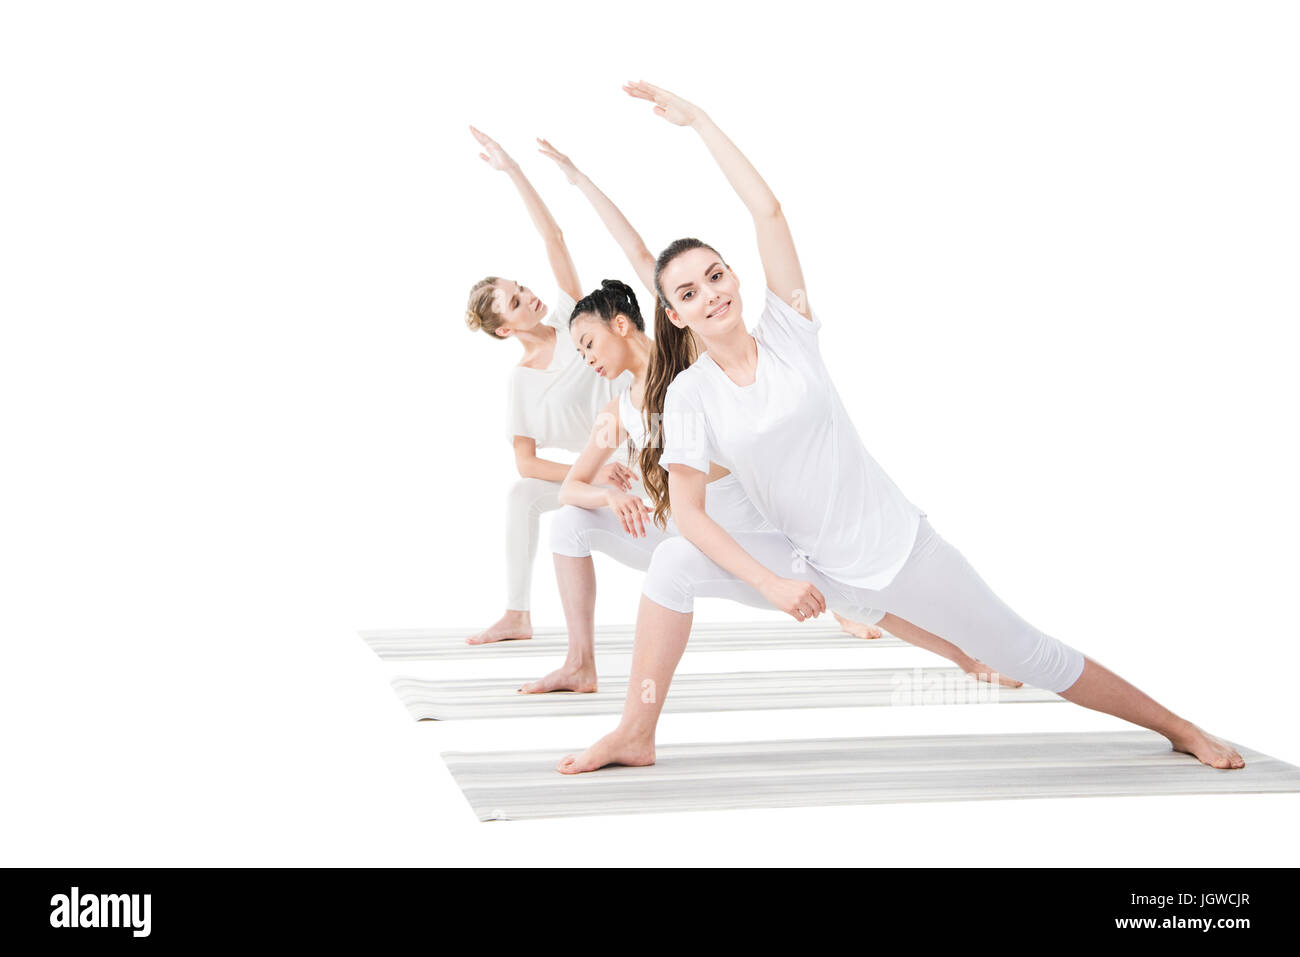 Smiling young women practicing Extended Side Angle Pose on yoga mats - Stock Image